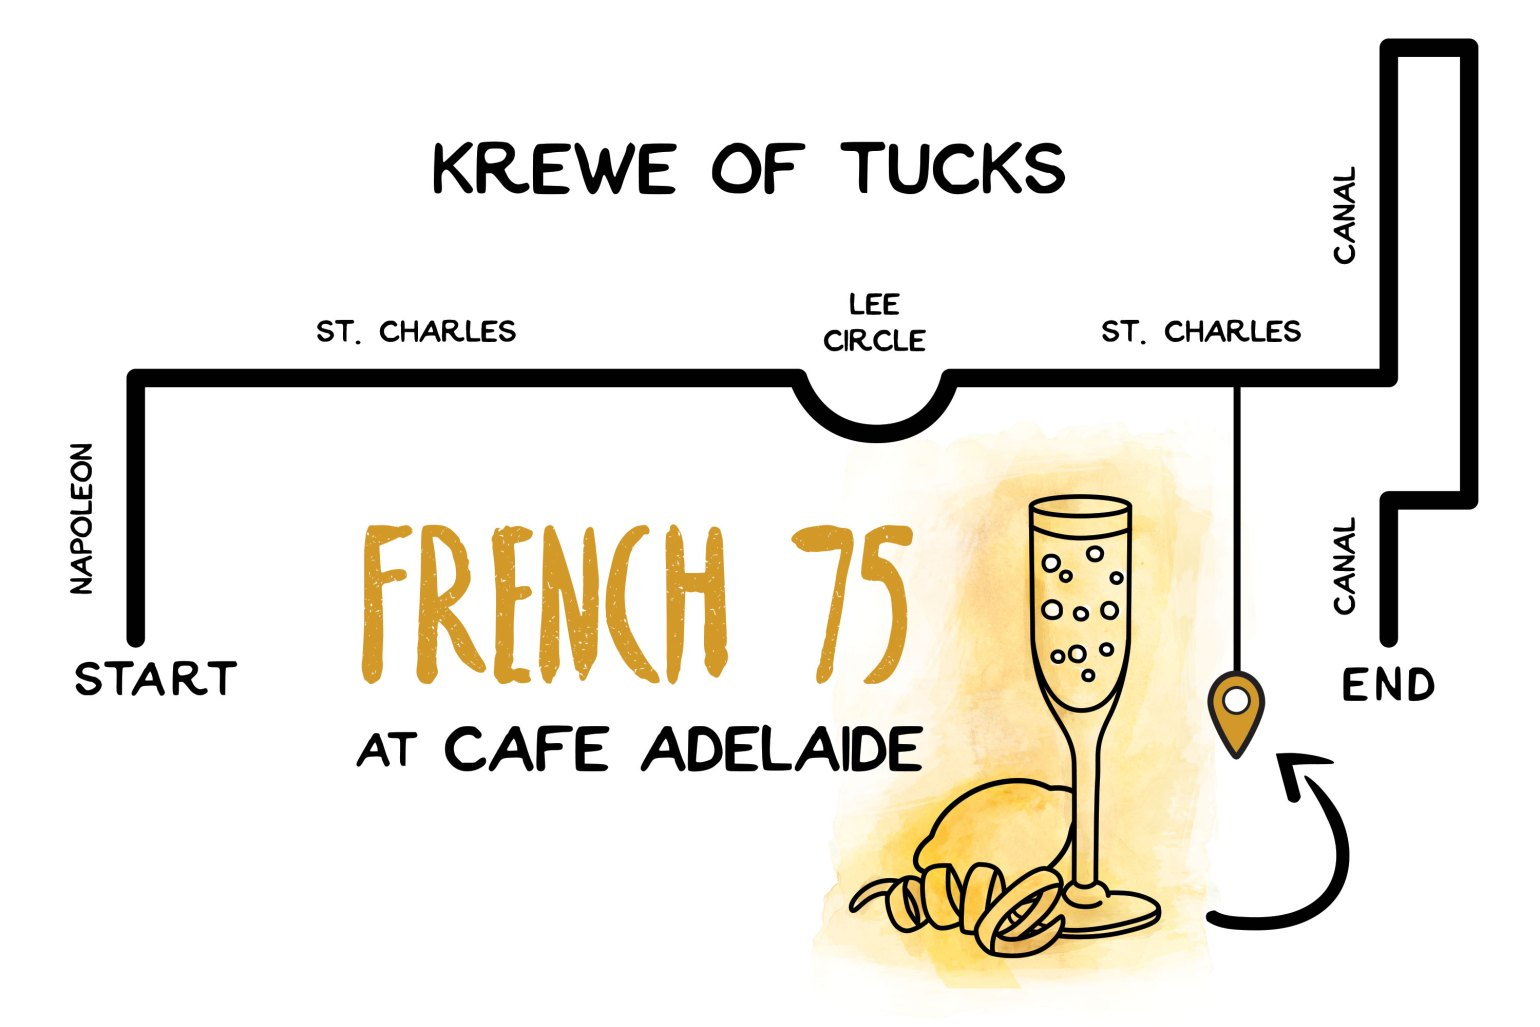 Parades and cocktails: French 75 at Cafe Adelaide